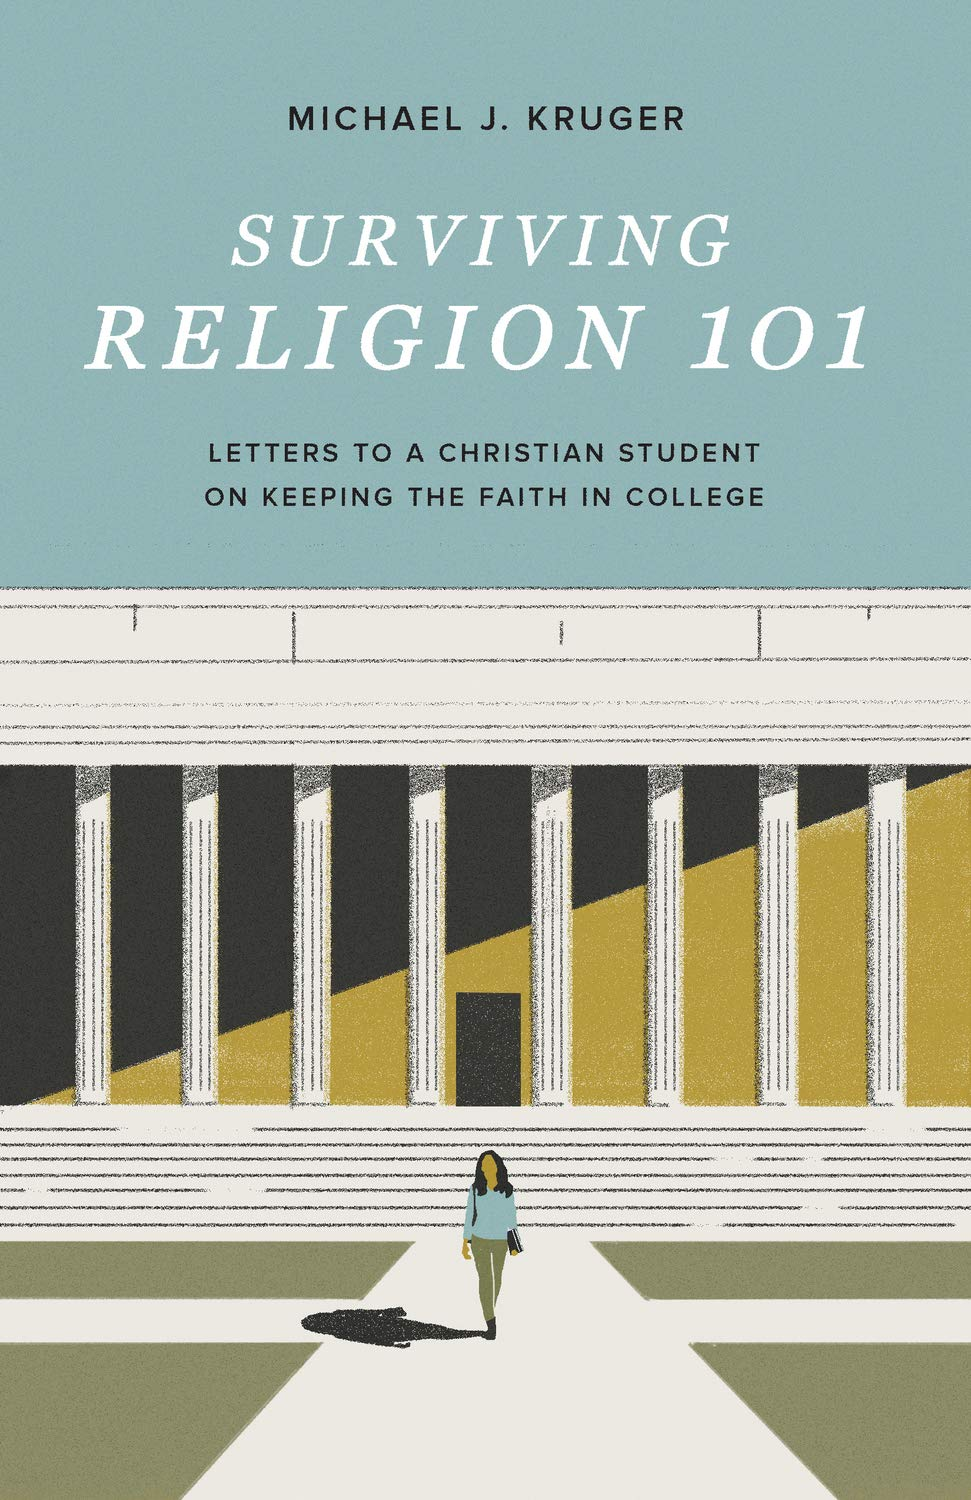 Surviving Religion 101: Letters to a Christian Student on Keeping the Faith in College: Kruger, Michael J.: 9781433572074: Amazon.com: Books